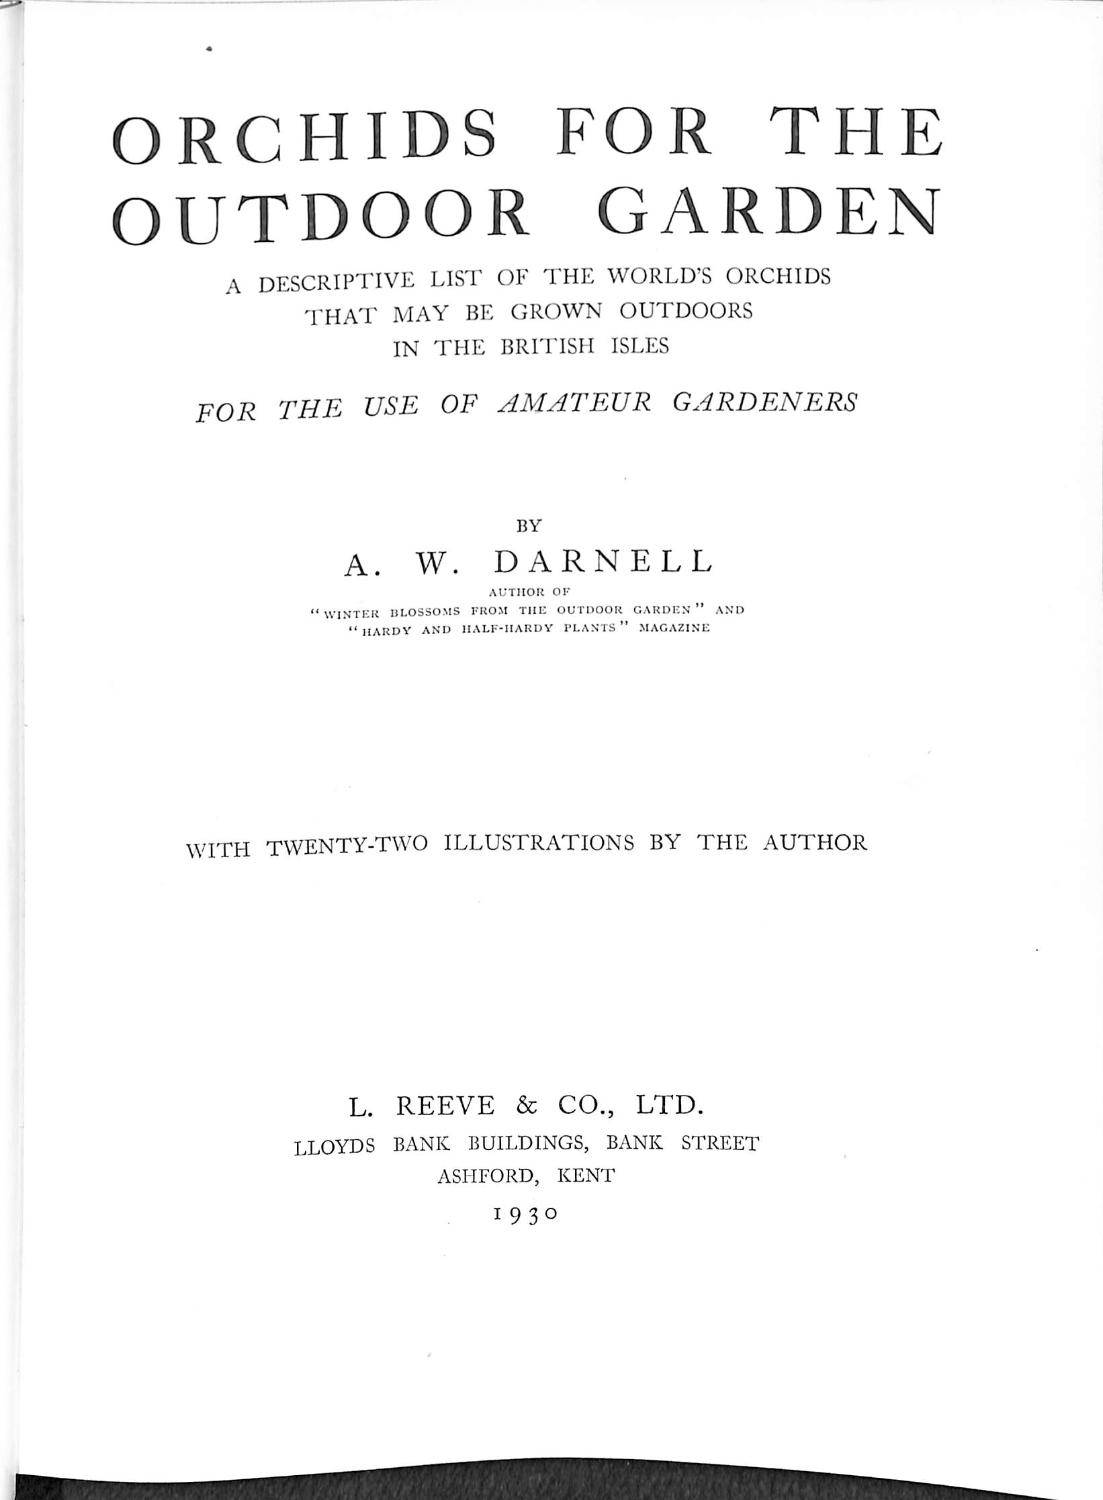 Orchids for the Outdoor Garden: a Descriptive List. British Isles for the Use of Amateur Gardeners a. W Darnell [Good] [Hardcover]